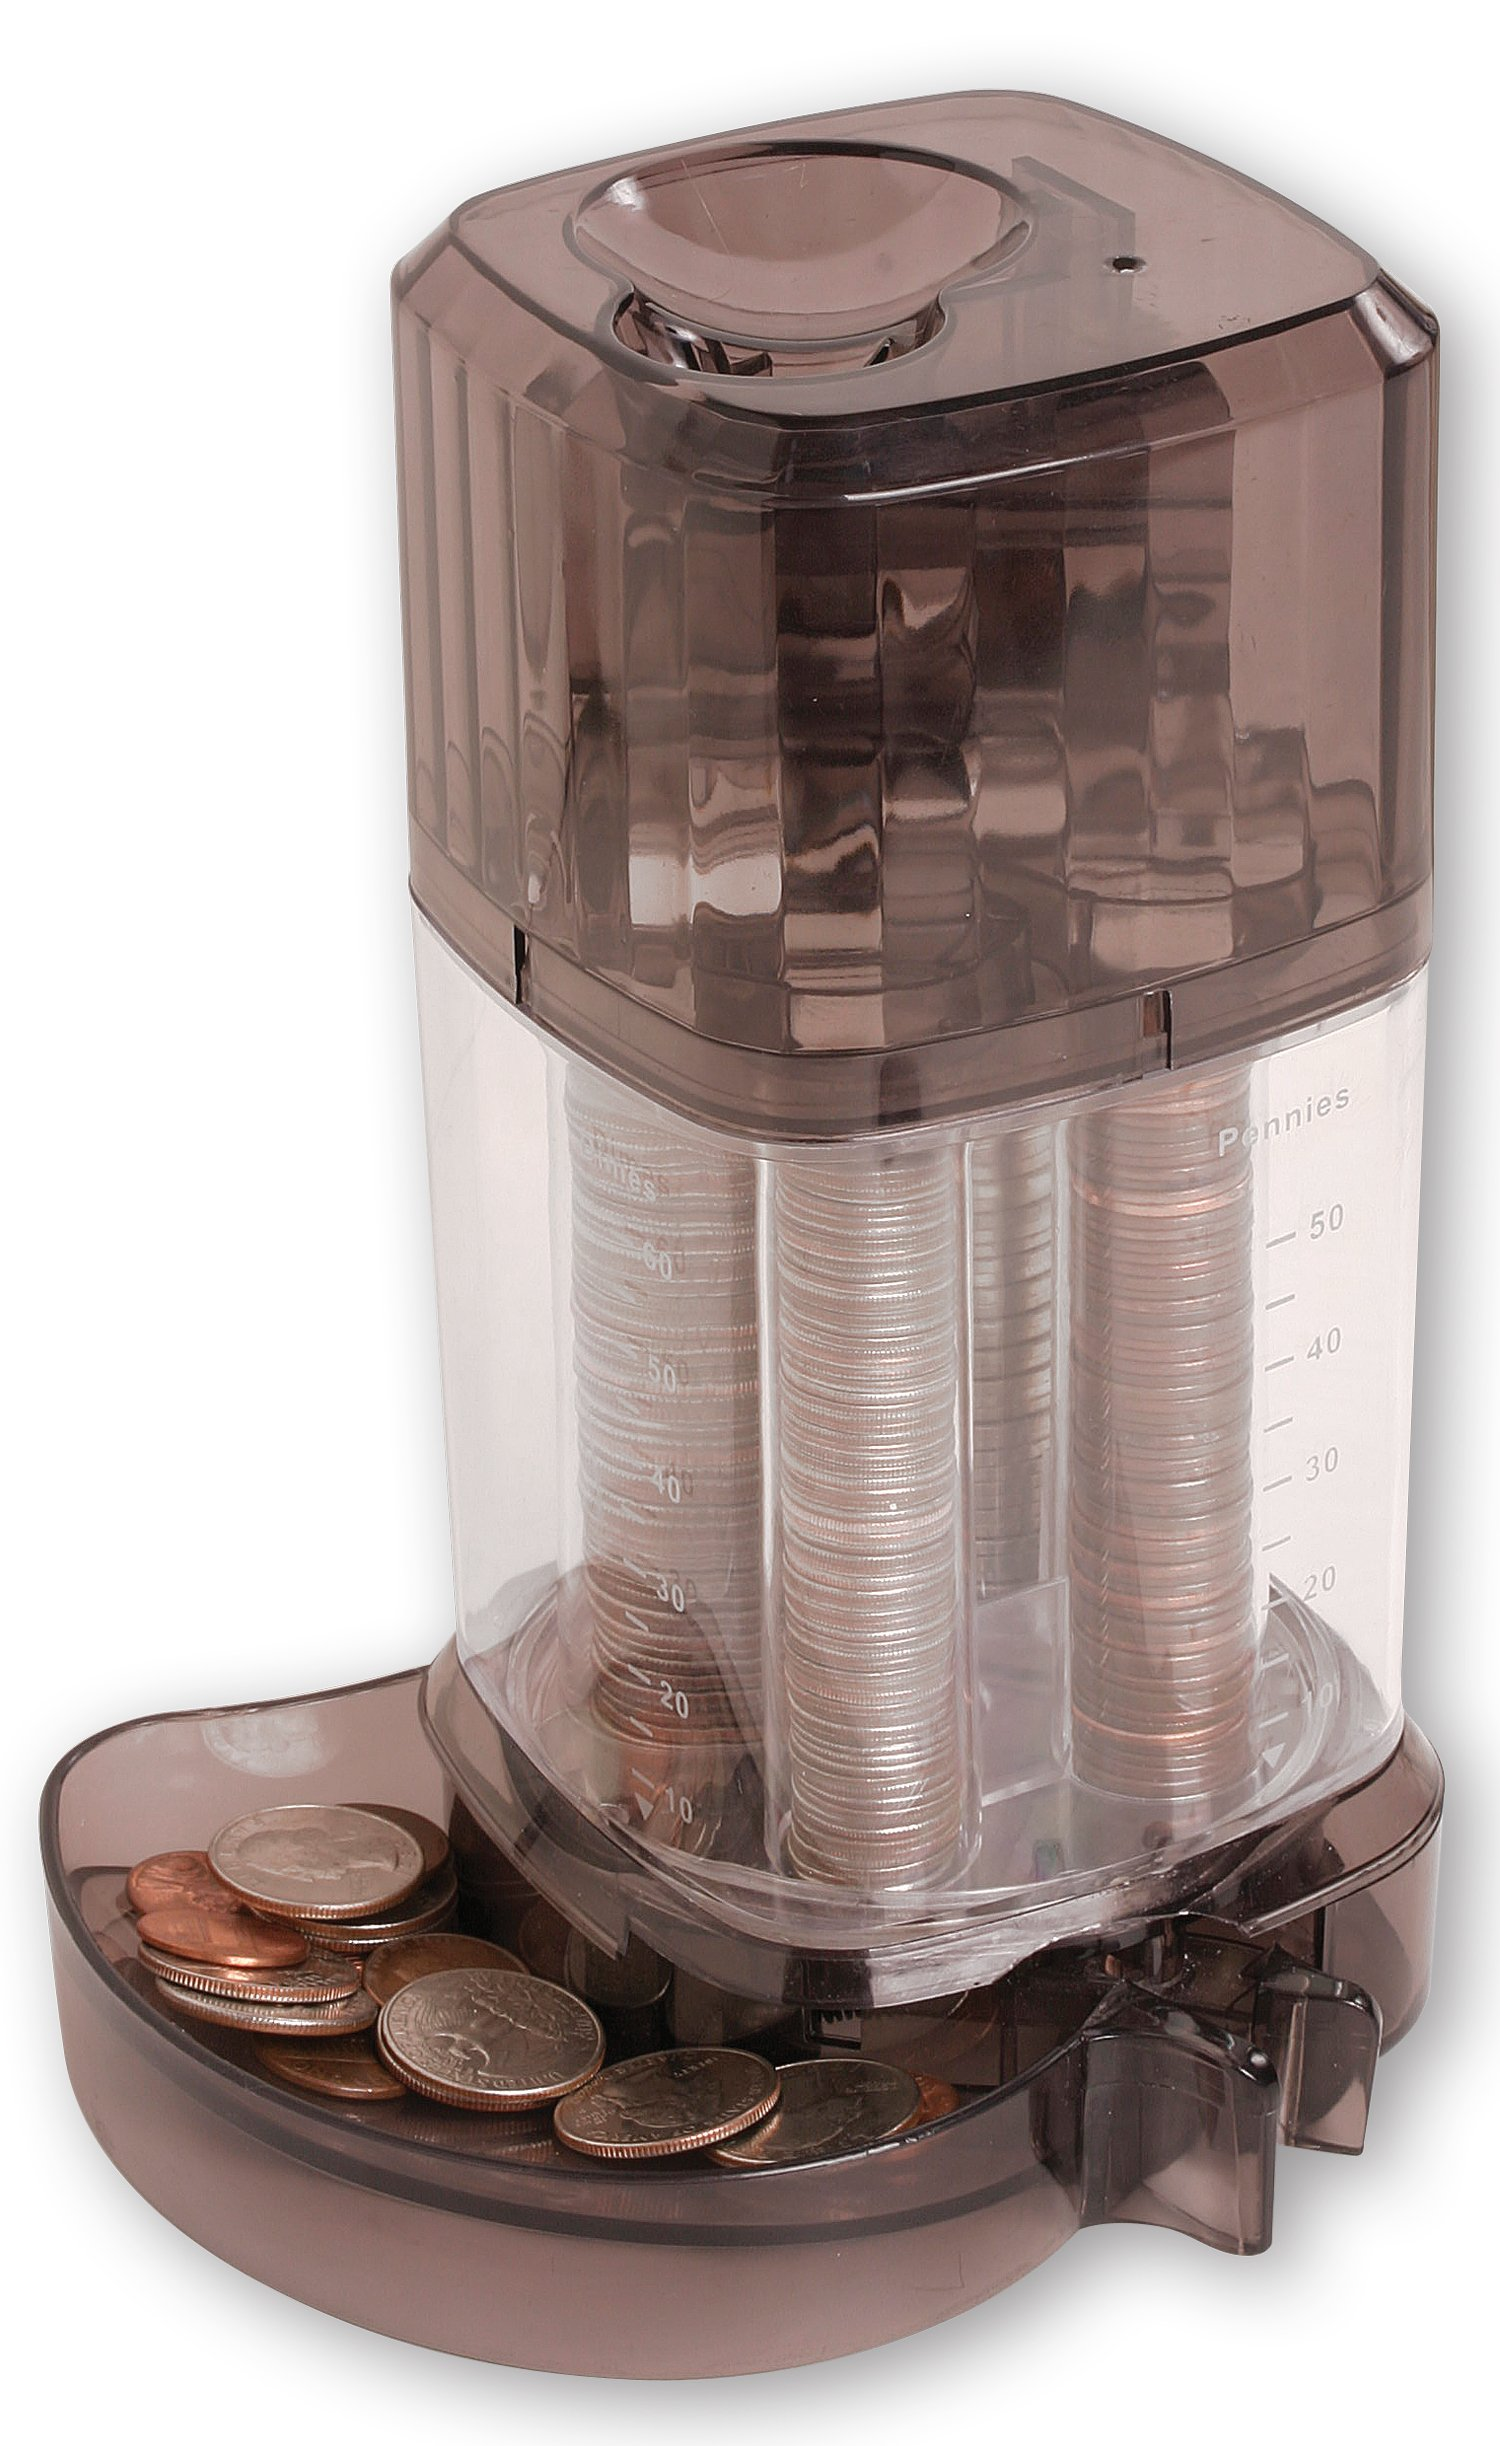 Automatic Coin Sorter Piggy Bank - Clear Standing First Piggie Bank Toy Sorts Stacks Dispenses USA Coins Pennies Nickels Dimes Quarters